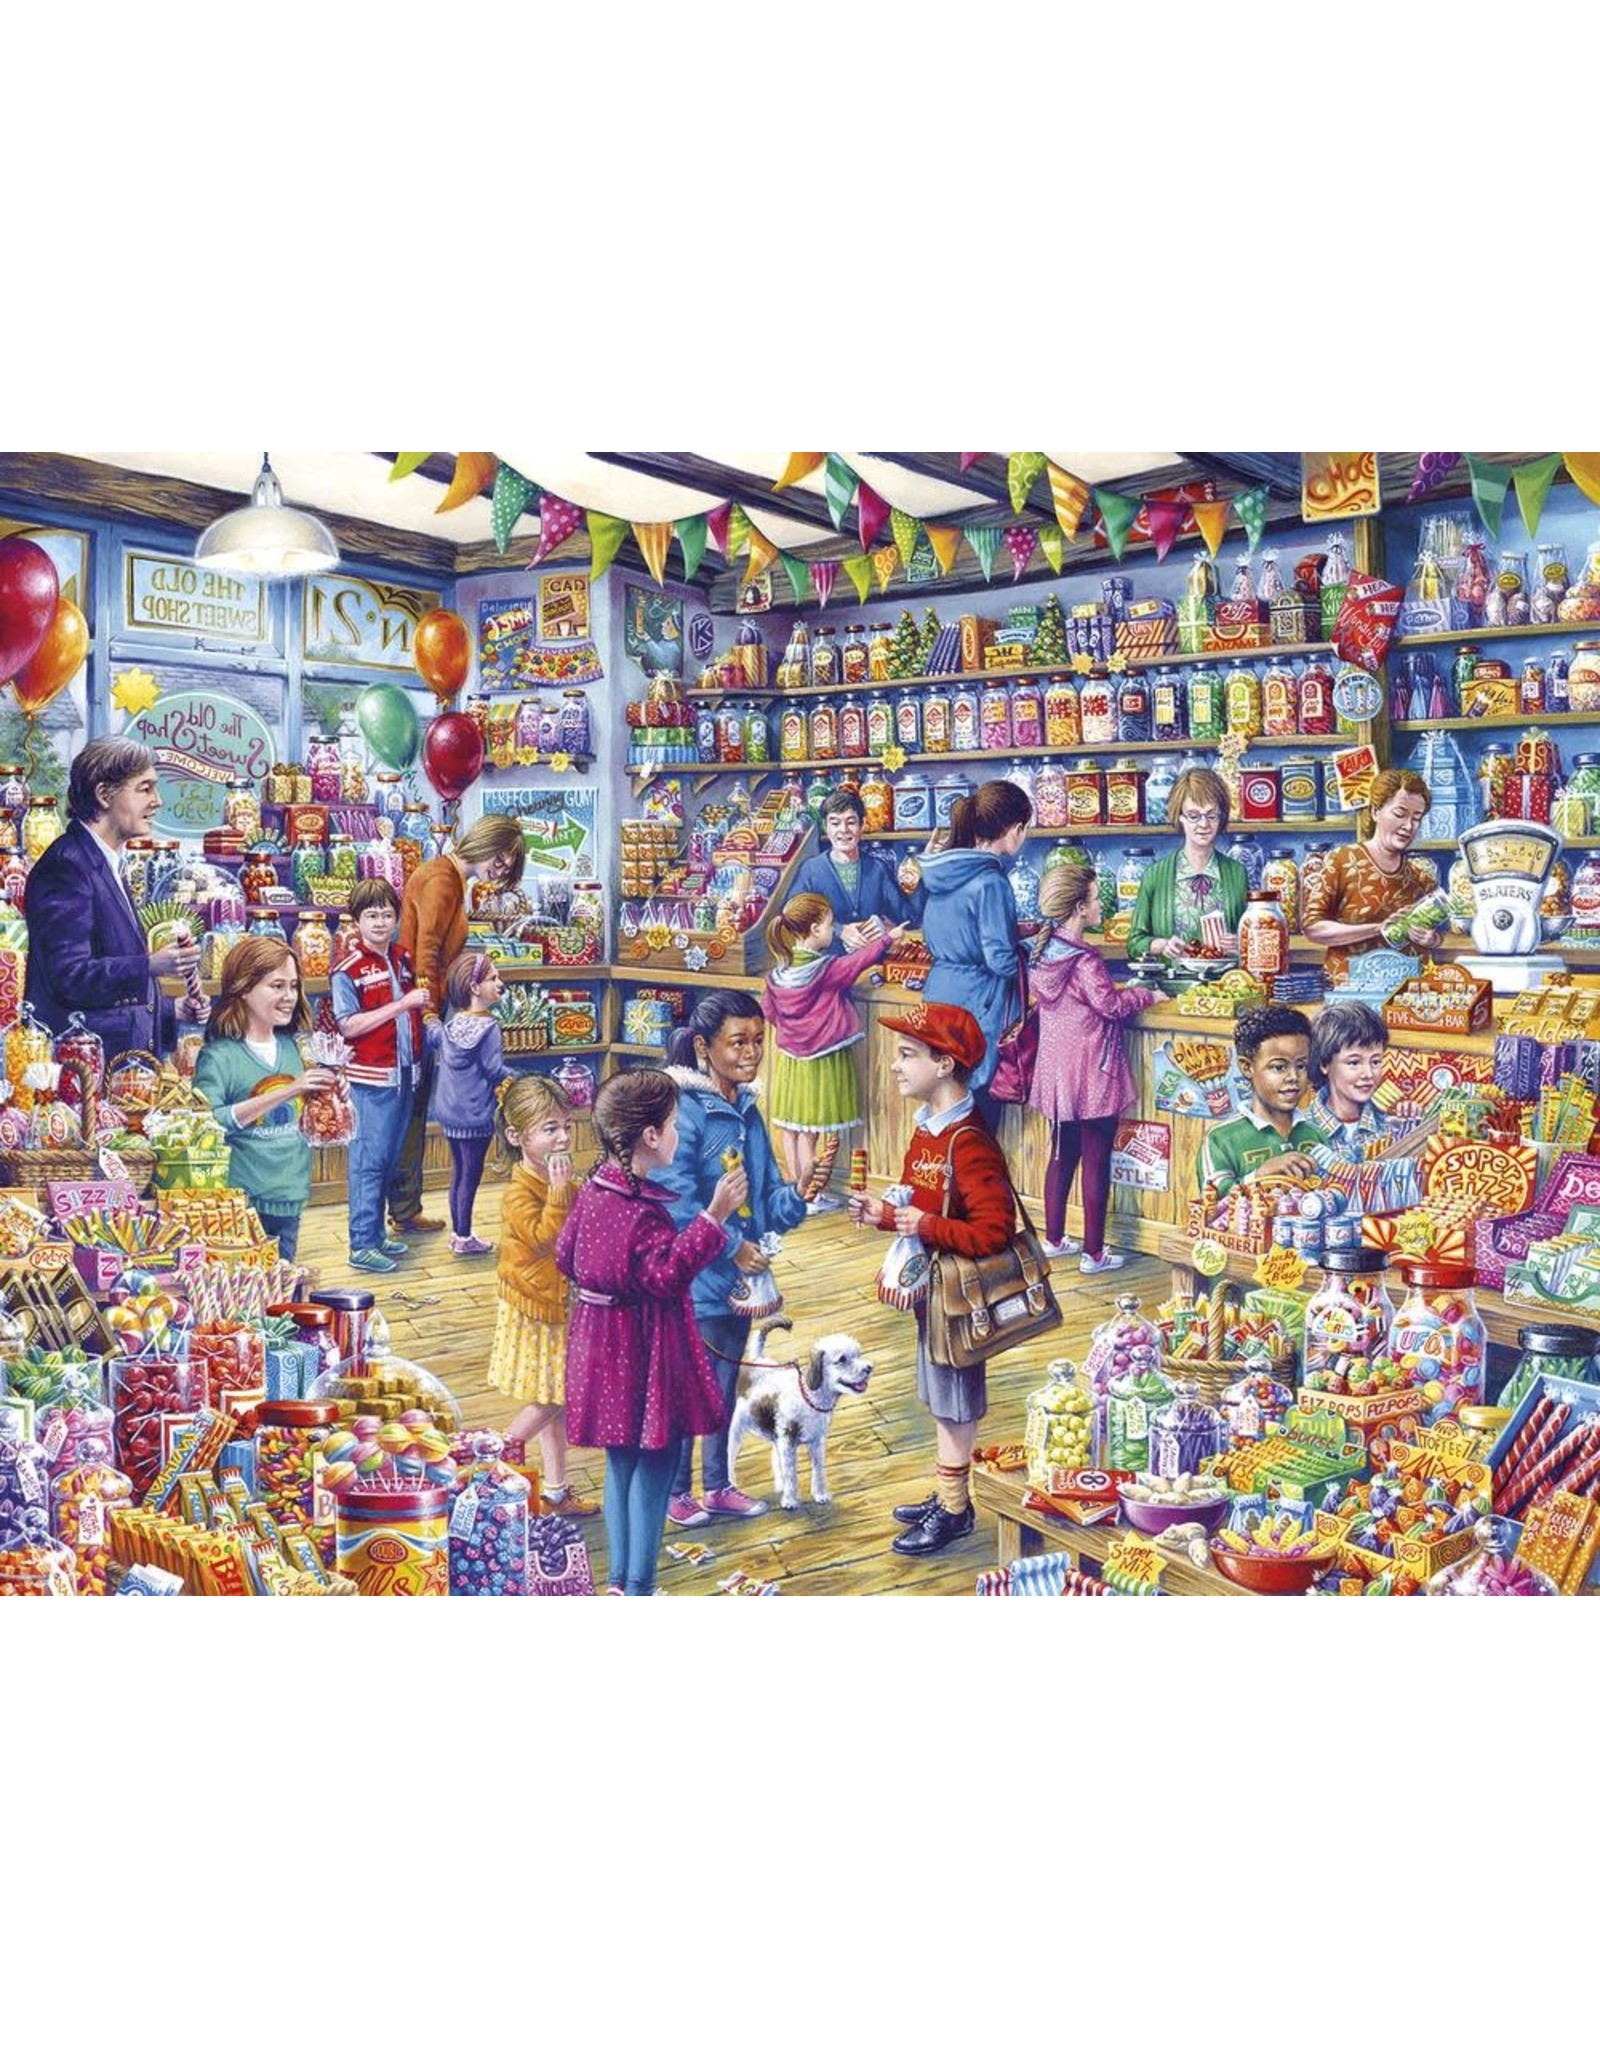 Gibsons 1000PC PUZZLE - THE OLD SWEET SHOP